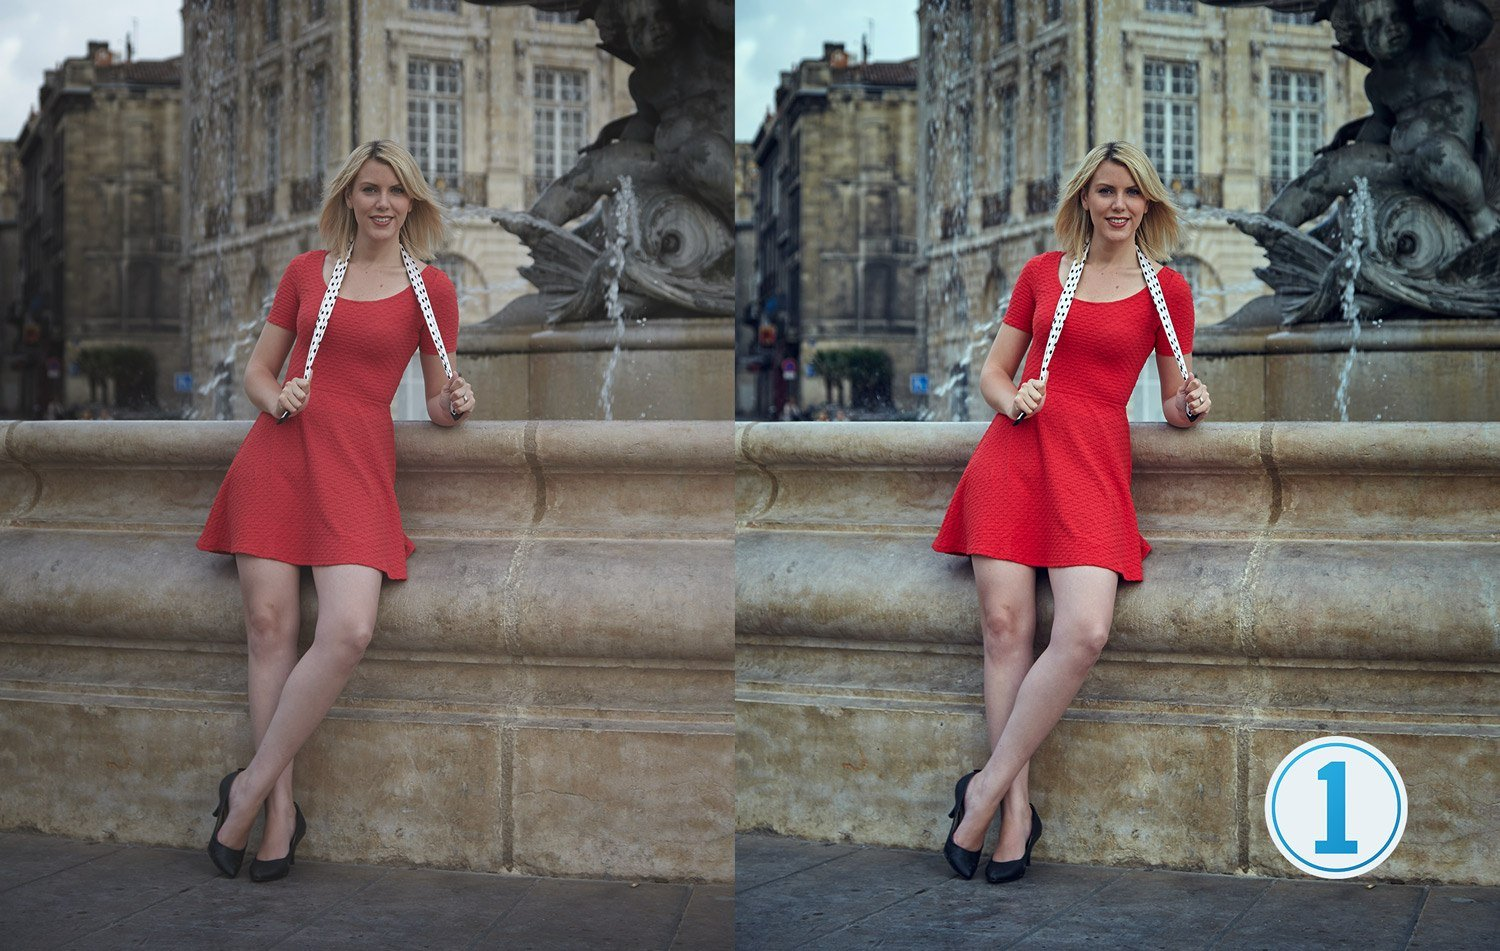 Free-Capture-One-Preset-Style-Portrait-Pop-Before-and-After-Presetpro.com